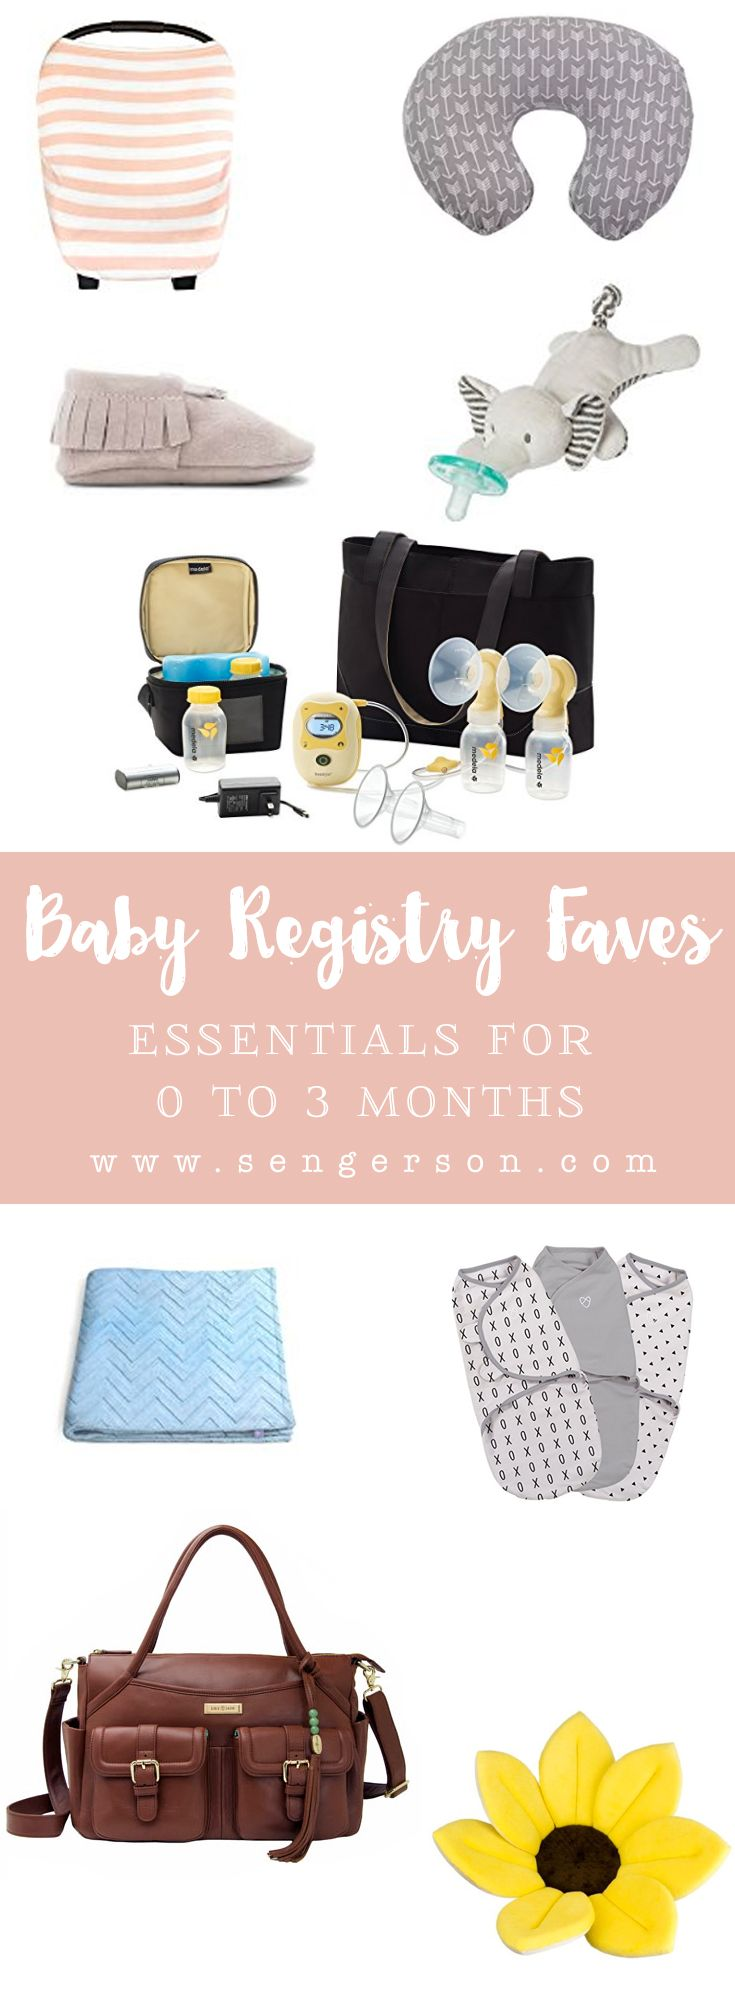 Essential baby registry items for 0 to 3 months.